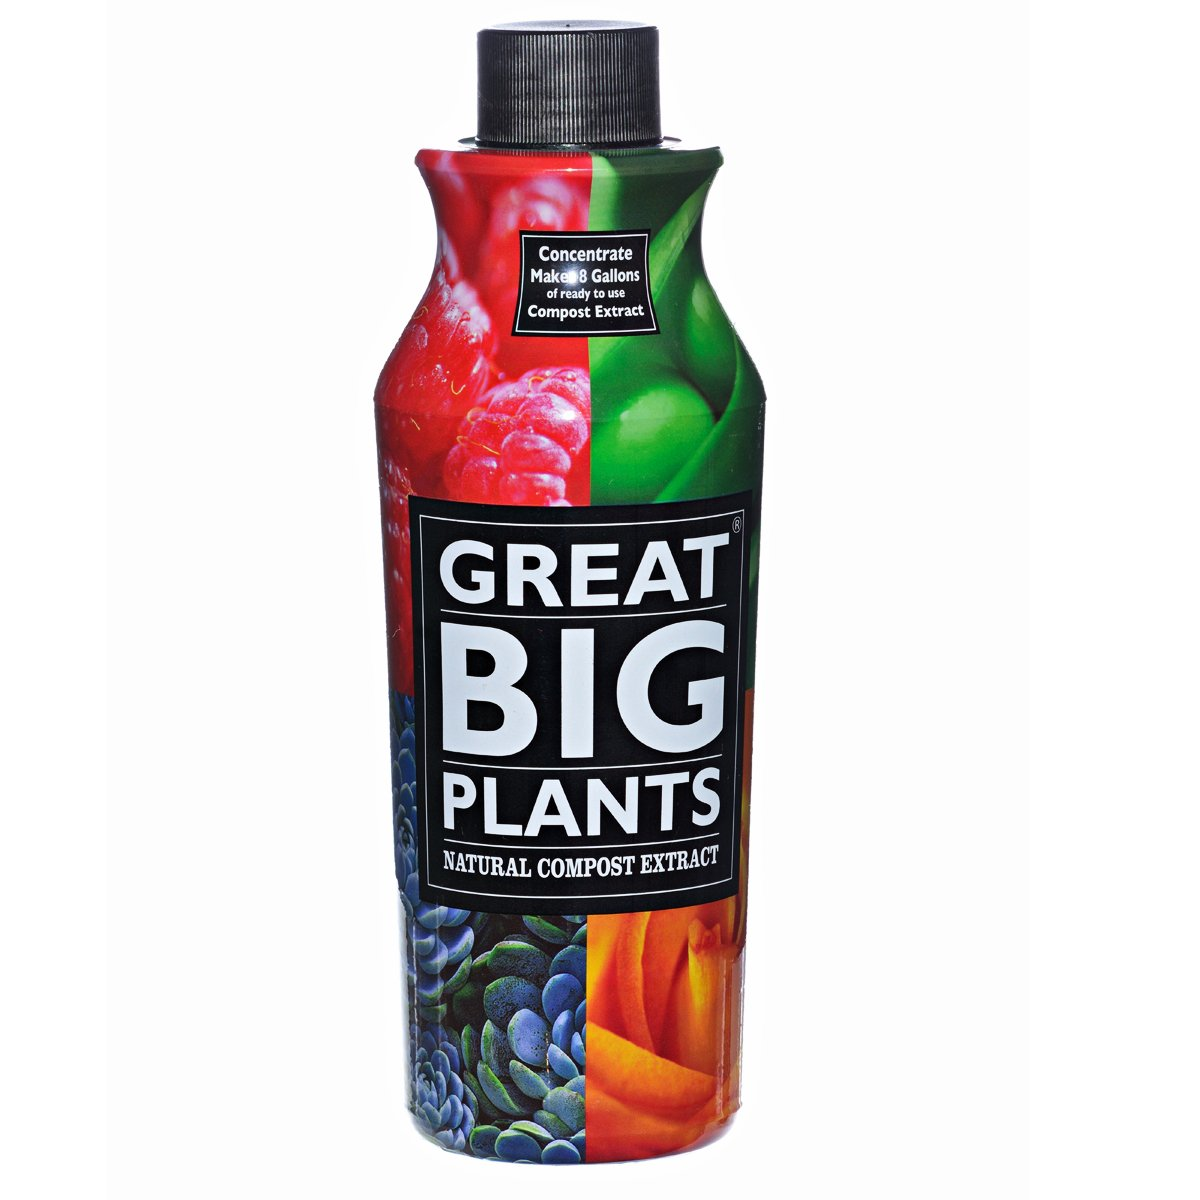 Great Big Plants Natural Compost Extract, Concentrate 32-Ounce